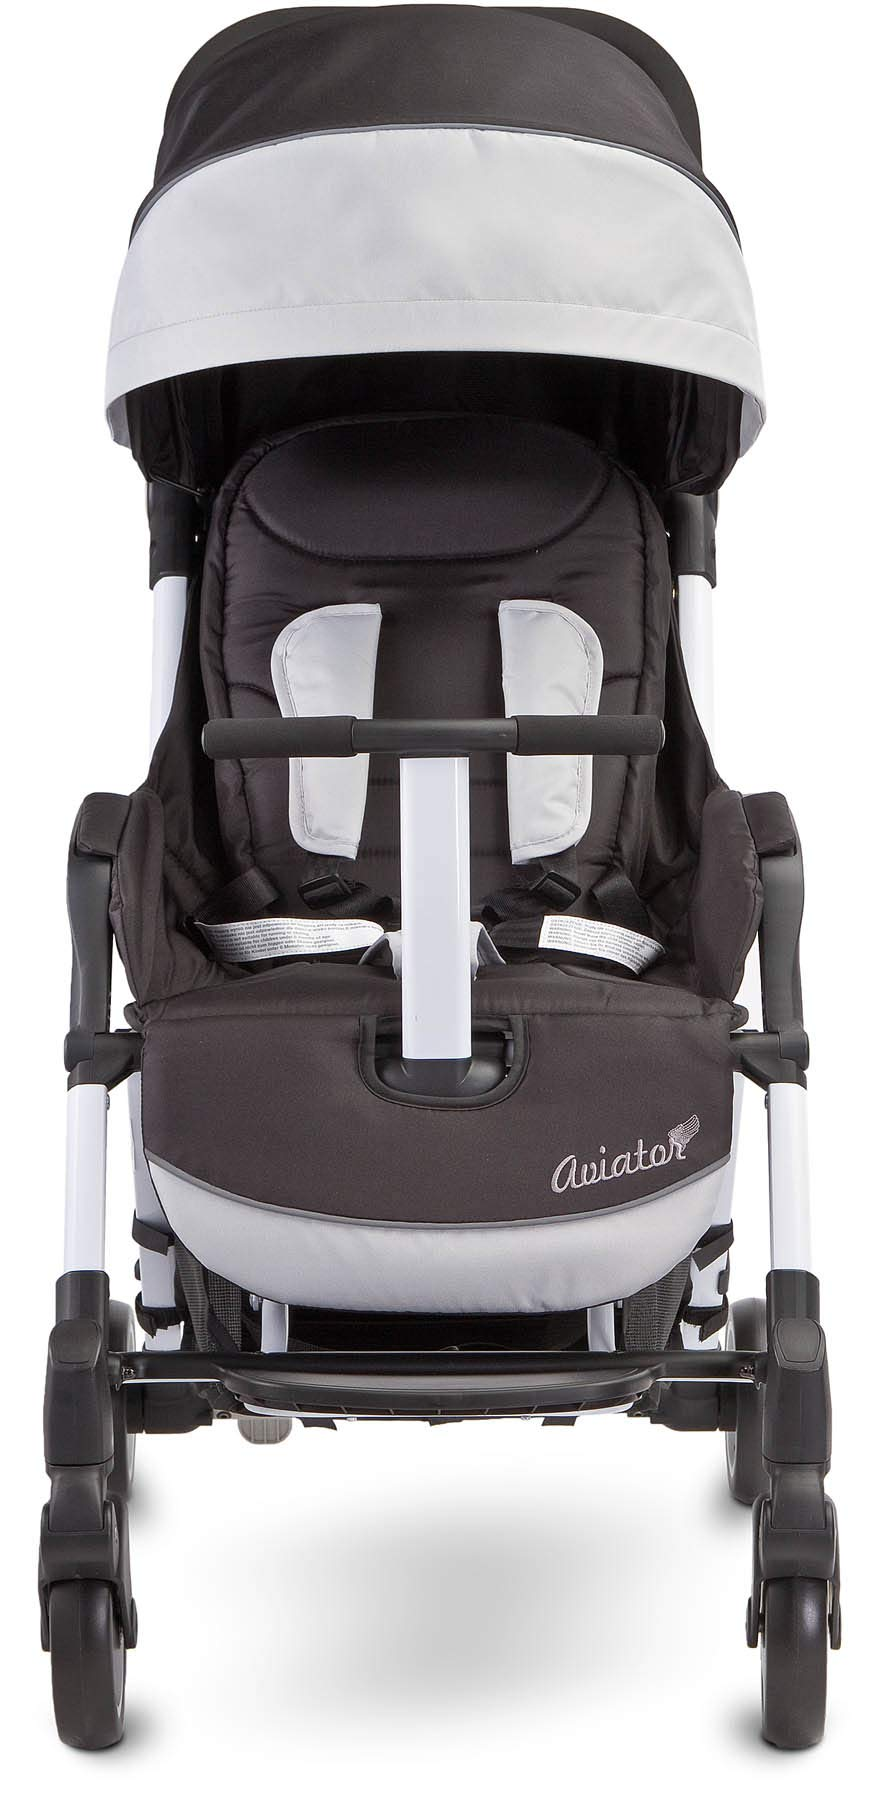 Aviator Ultralight Pushchair Grey Caretero Stroller for babies from 6 months Month weighing up to 15 kg Compact size and light weight (7.1kg) for easy manoeuvring and transport Eva foam wheels front with cushioning for driving comfort 4